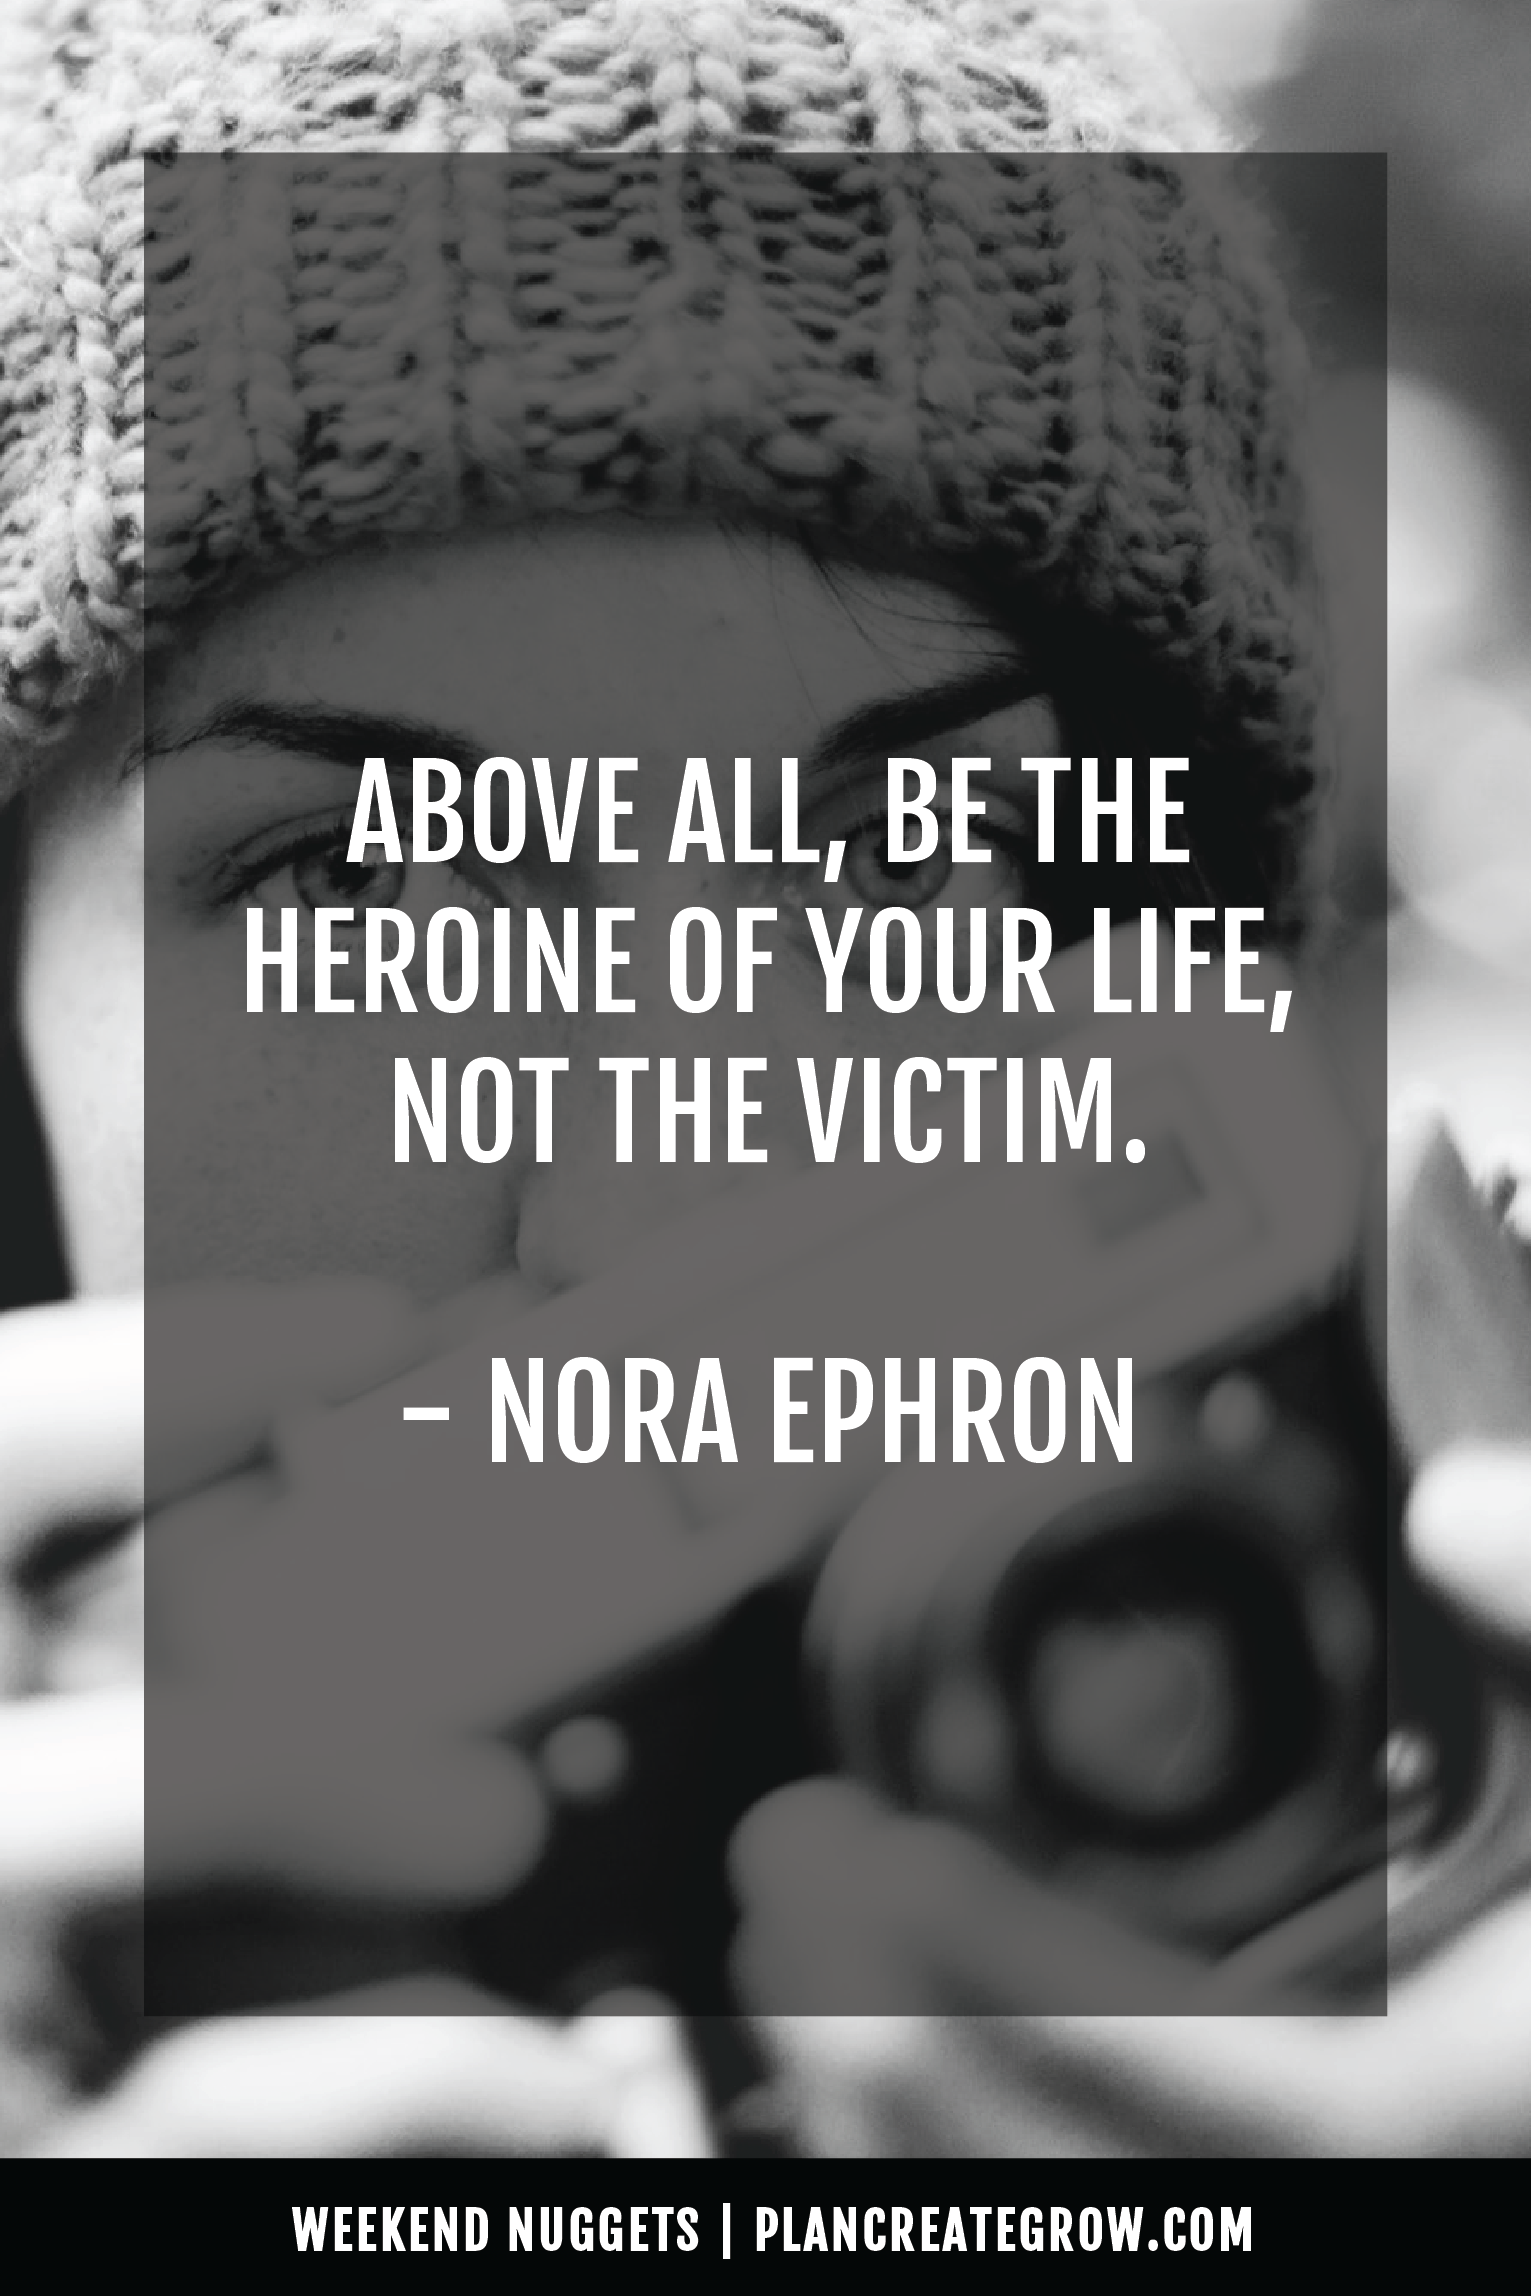 """""""Above all else, be the heroine of your life, not the victim."""" - Nora Ephron  This image forms part of a series called Weekend Nuggets - a collection of quotes and ideas curated to delight and inspire - shared each weekend. For more, visit plancreategrow.com/weekend-nuggets."""